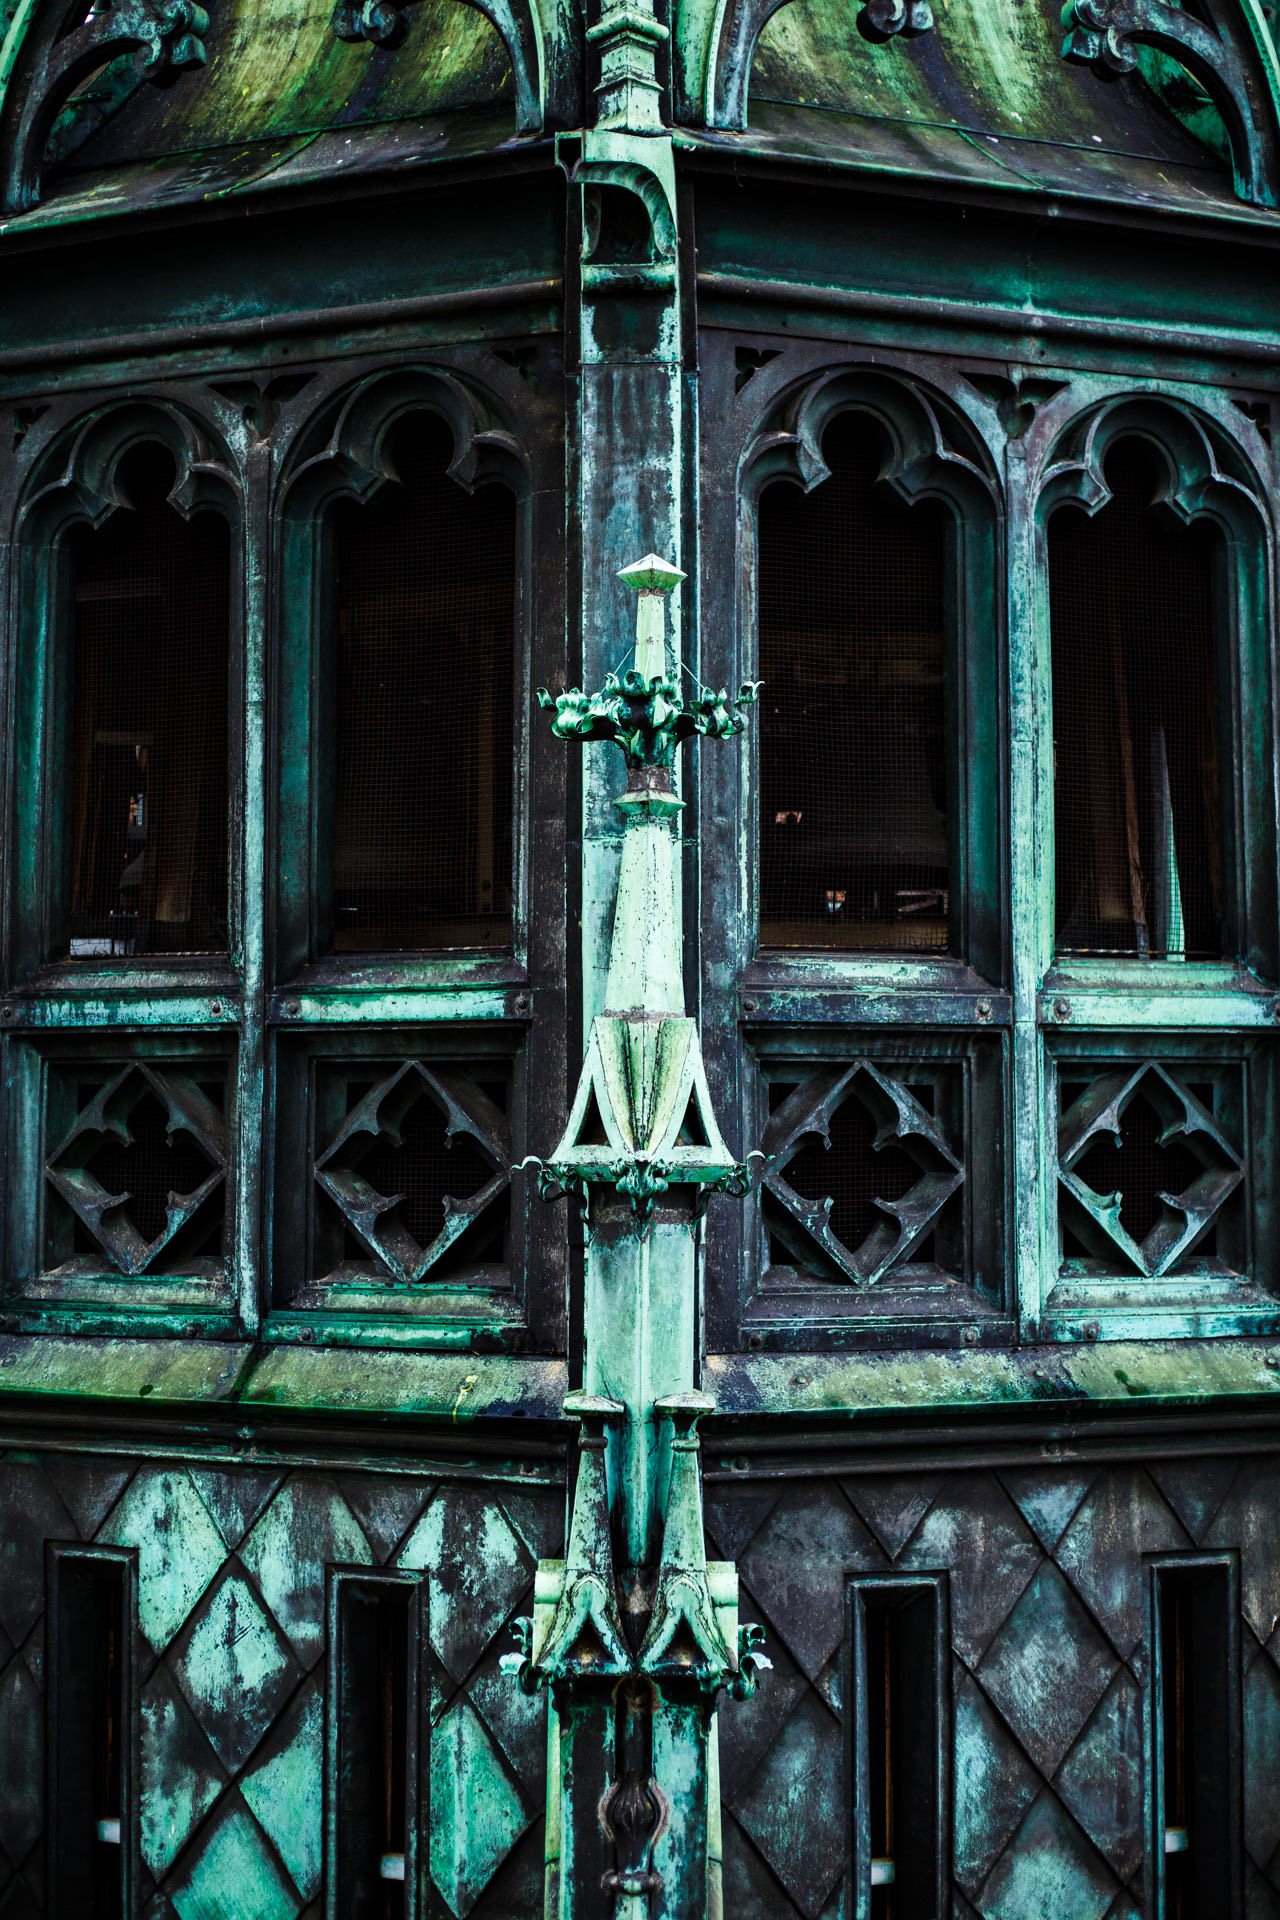 Detail of the main spire.